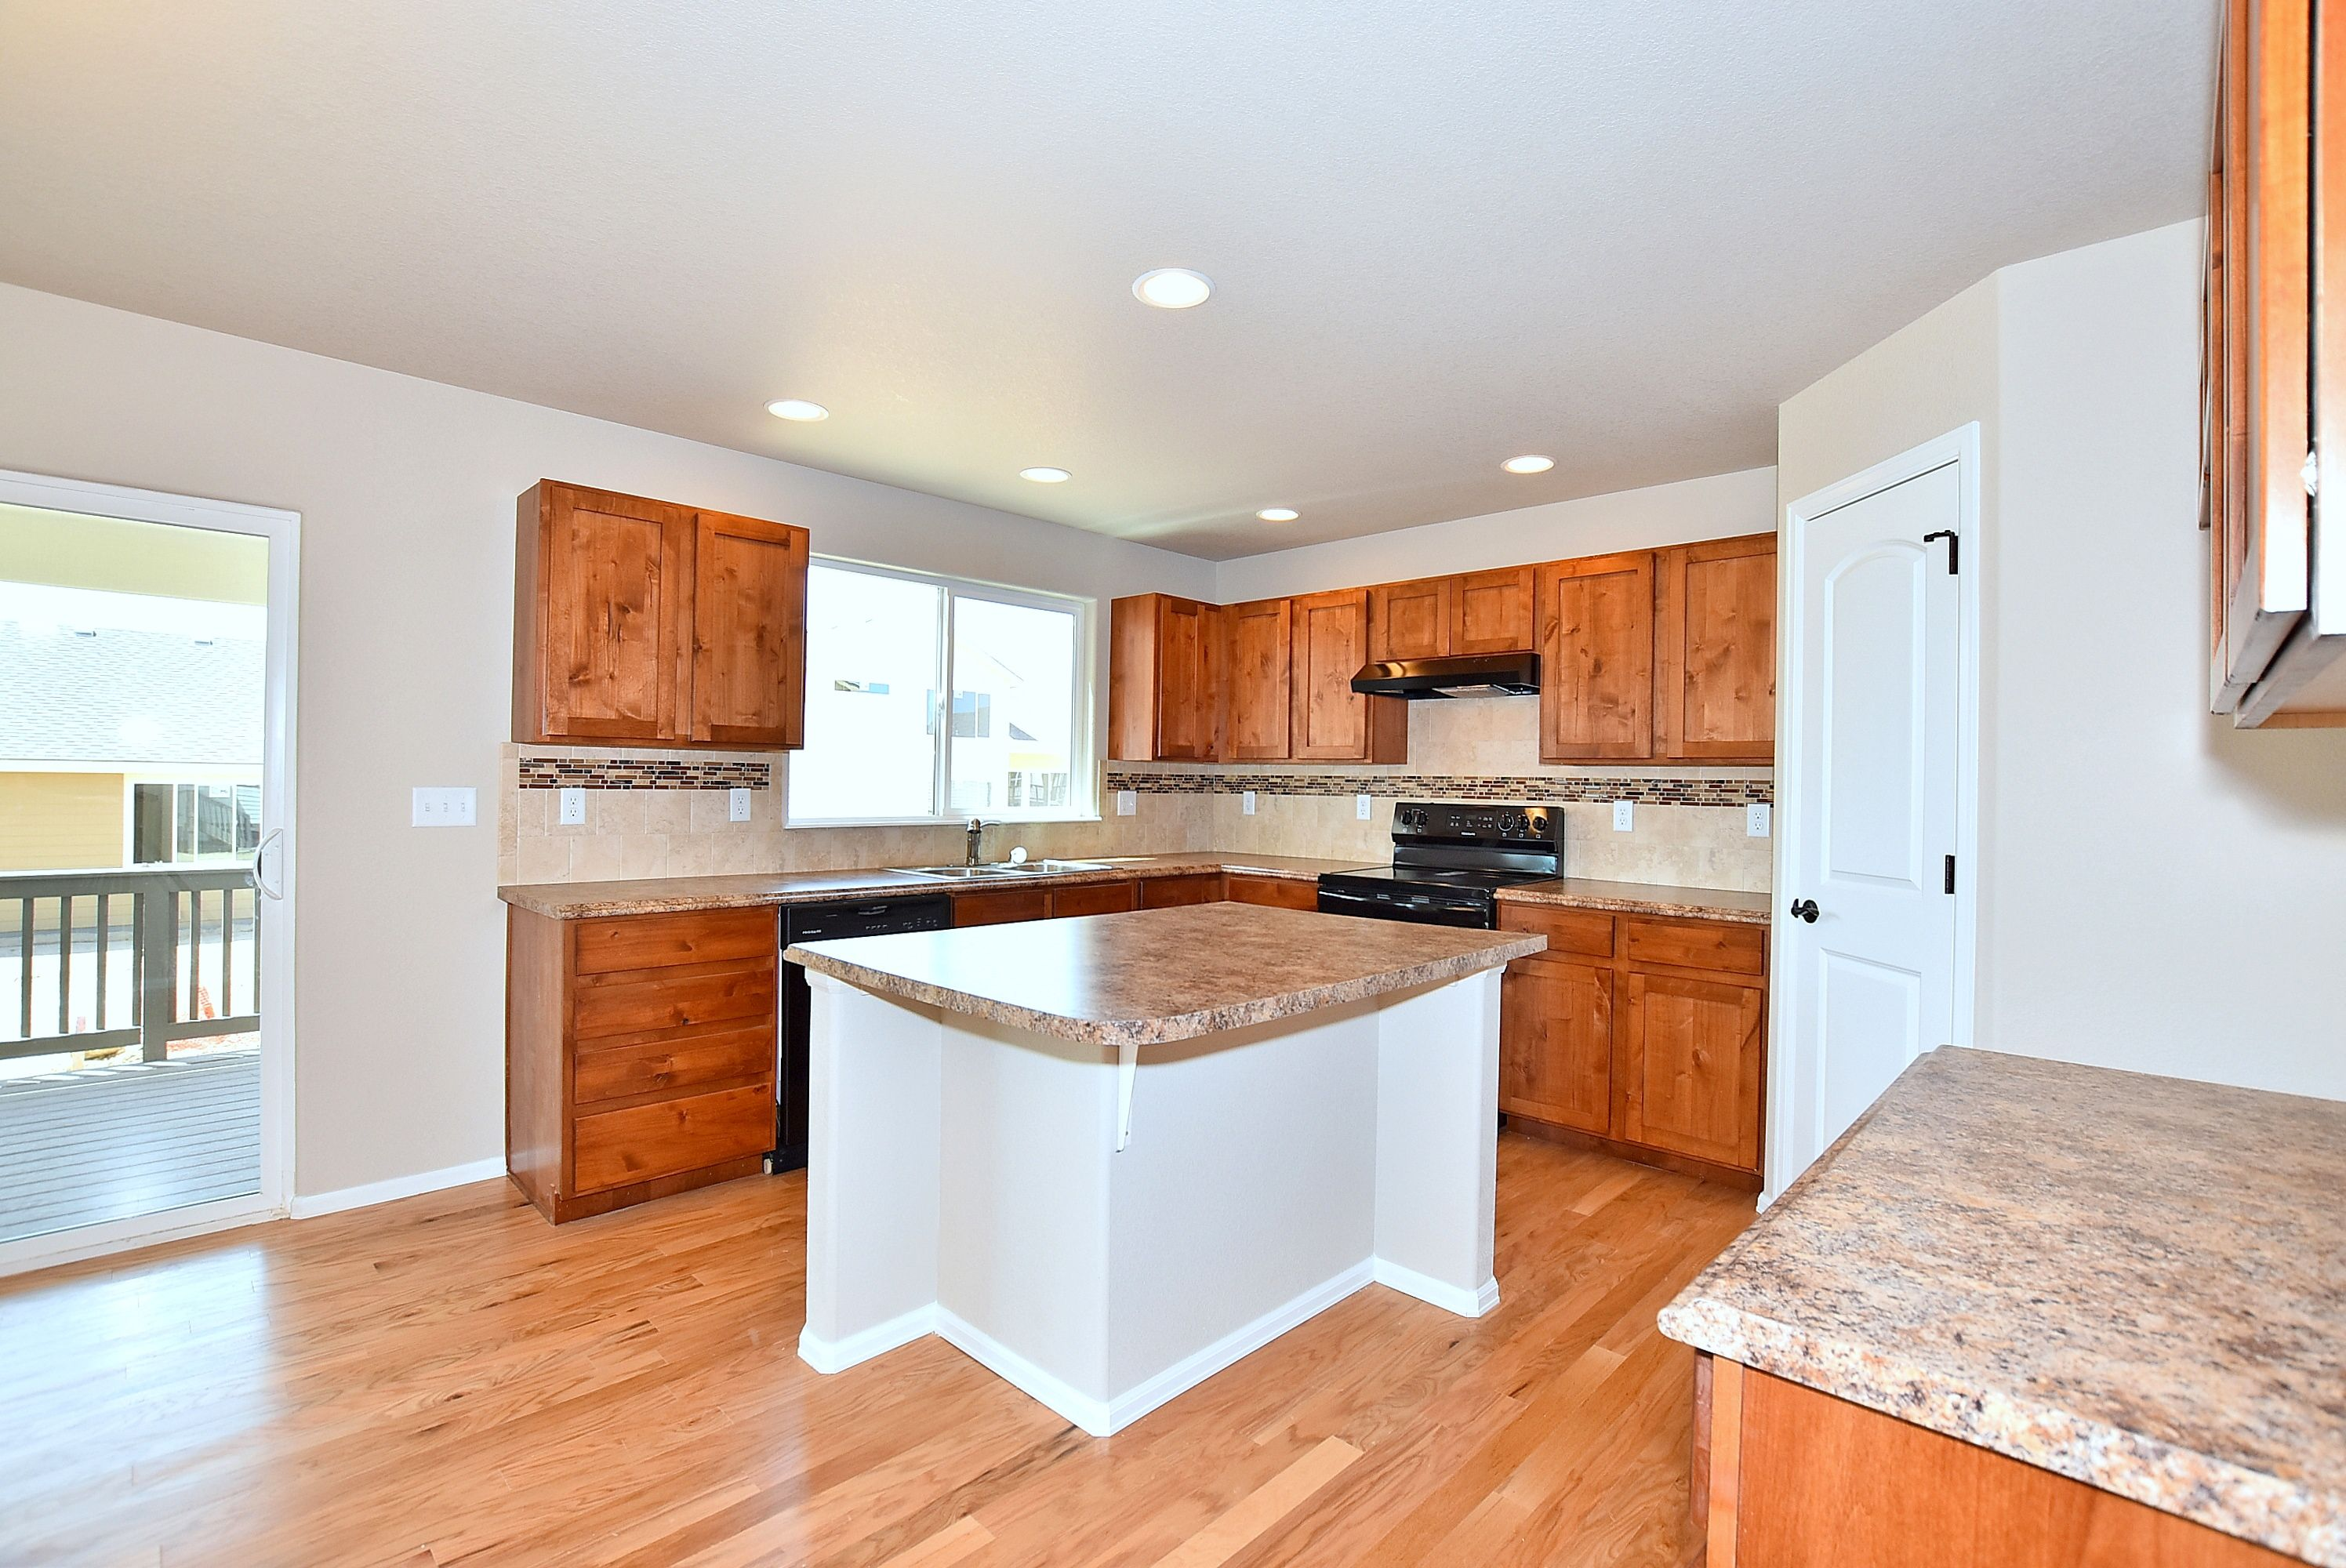 Kitchen featured in the Saratoga By Journey Homes in Greeley, CO